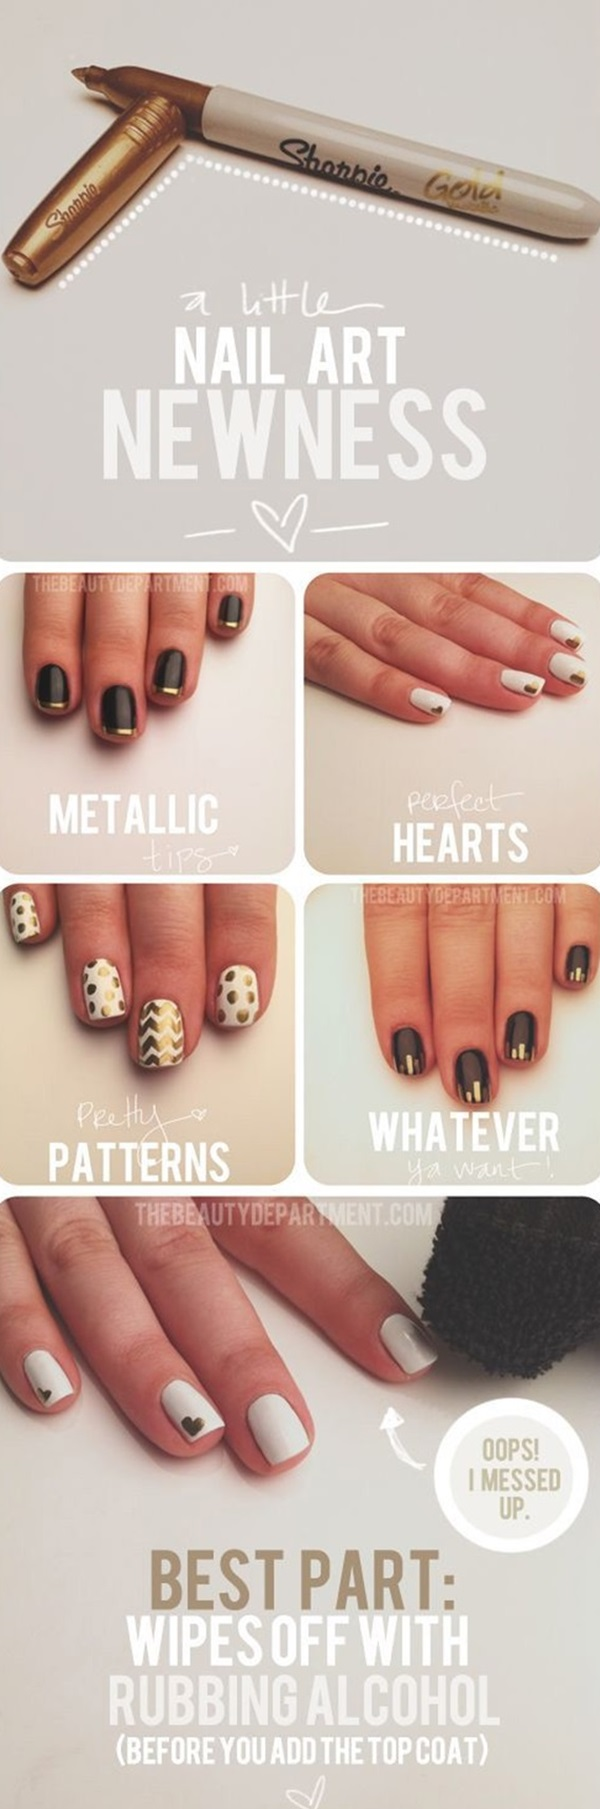 DIY Nail art designs (56)